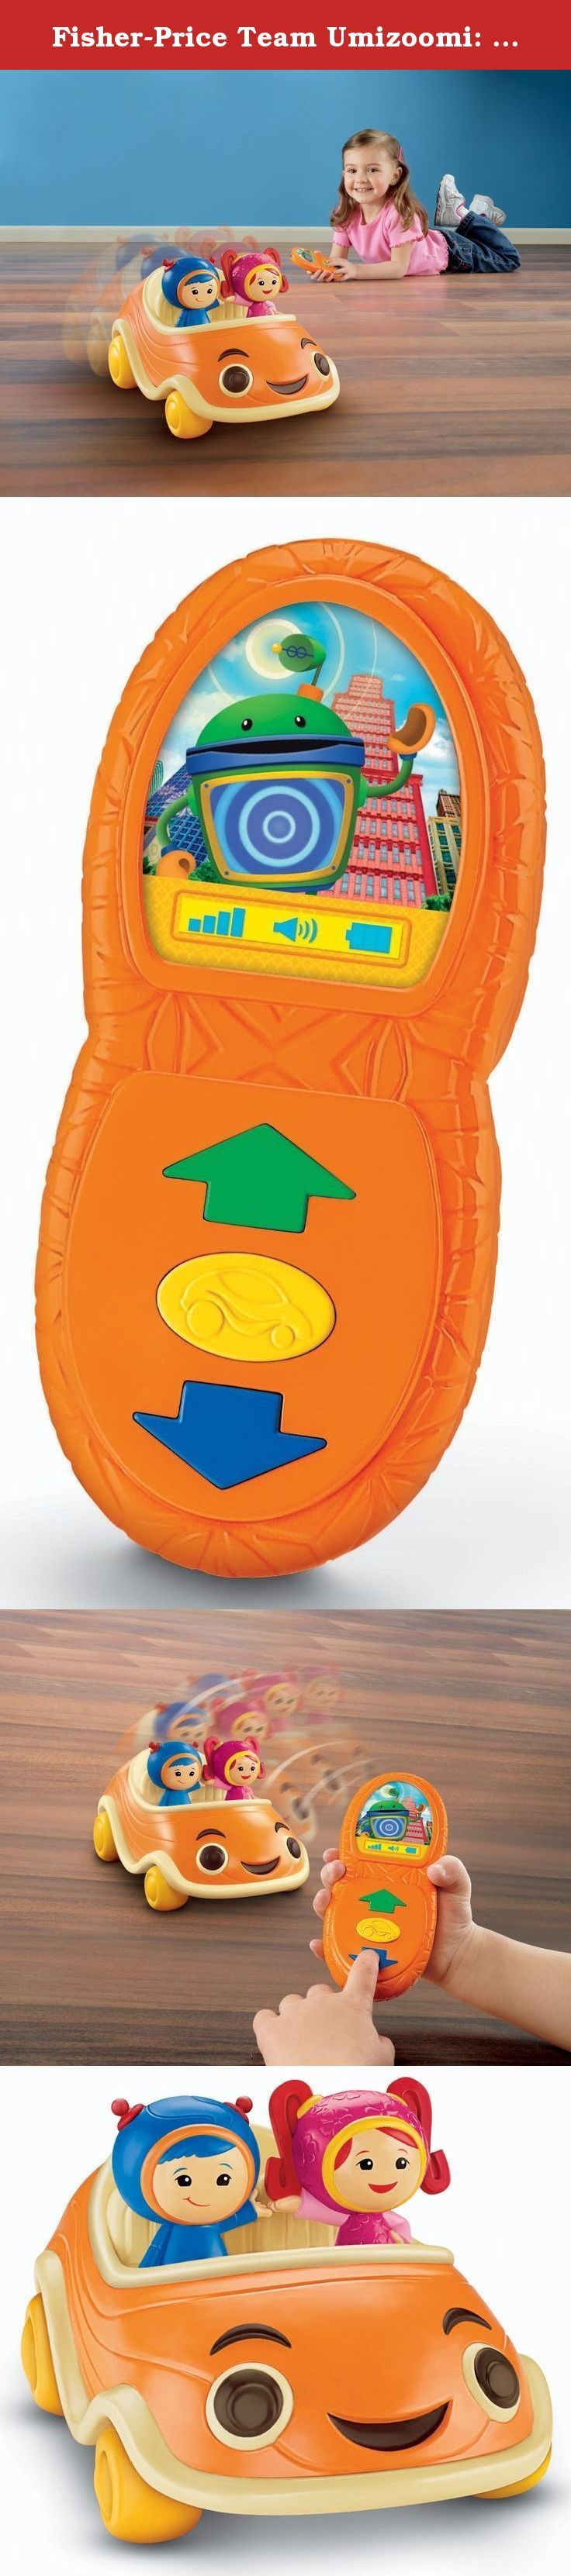 Fisher-Price Team Umizoomi: Come and Get Us Counting UmiCar. Introducing the Team Umizoomi Come & Get Us Counting Car, new for Fall 2012! Includes motorized Umicar with Milli and Geo, and an easy-to-use Umi Phone remote control with 3 buttons. Press the center button to call the Umi Car and it magically drives to straight to you, just like on the show! Press the forward arrow button and the Umicar moves and counts forwards. Press the reverse button and the Umicar spins backwards and…